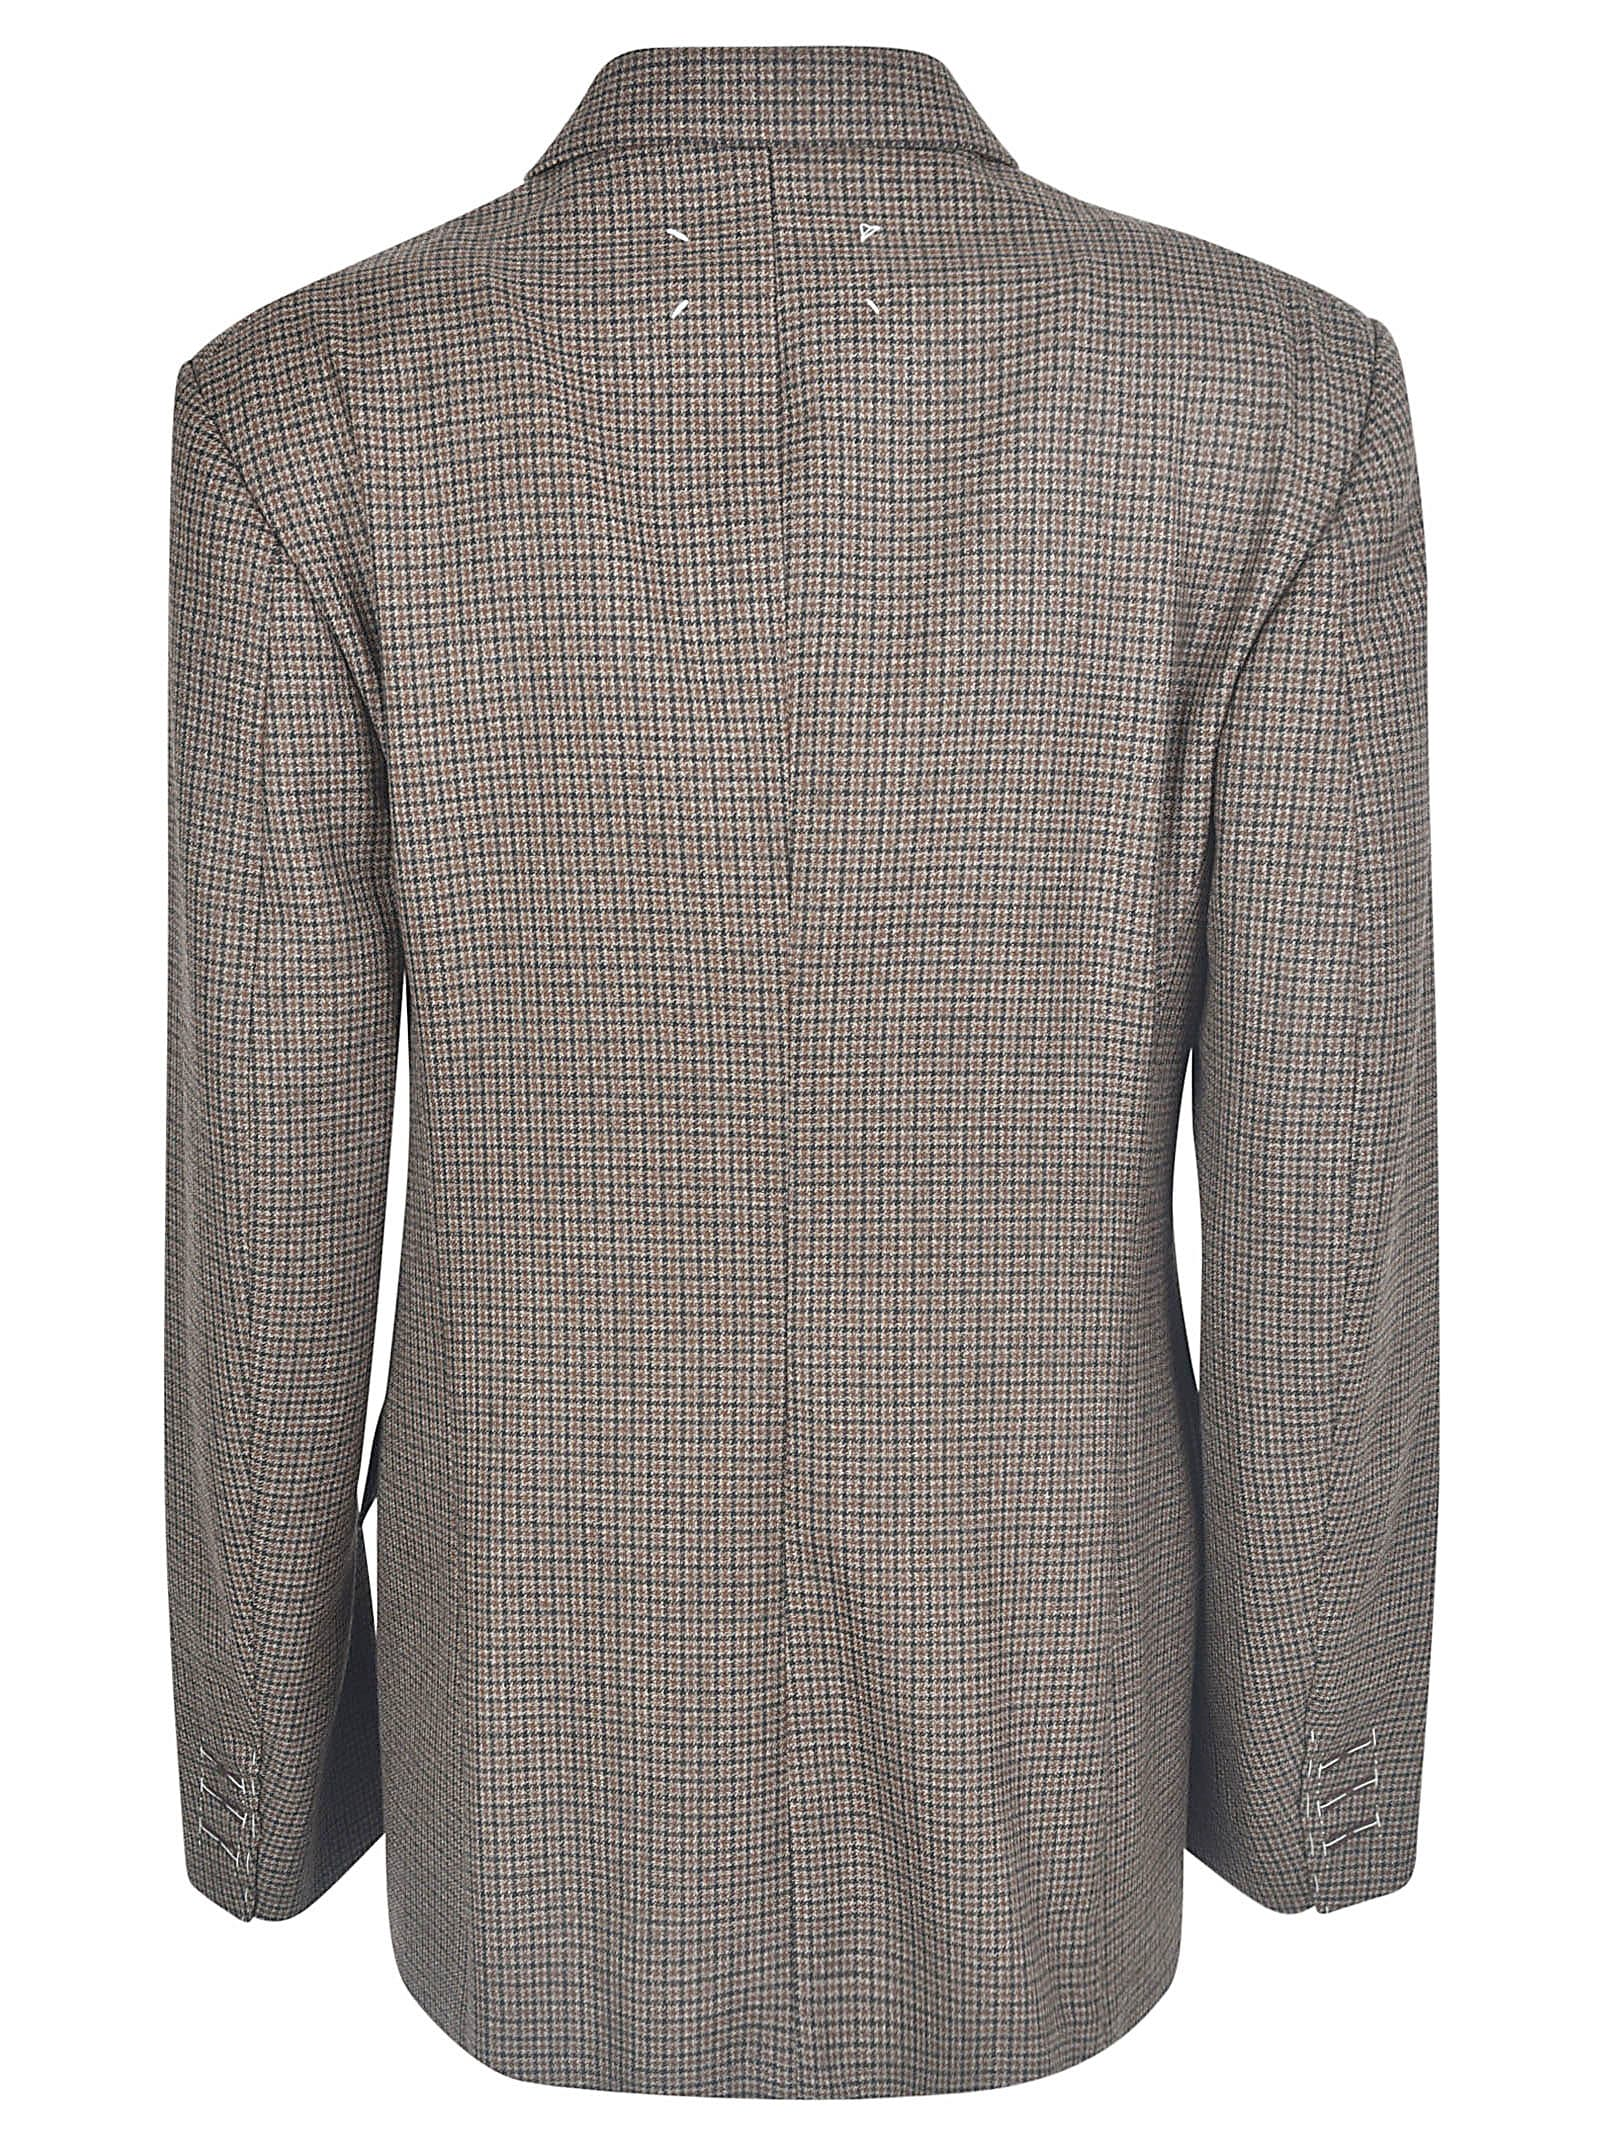 Particular Maison Margiela Double-breasted Check Blazer